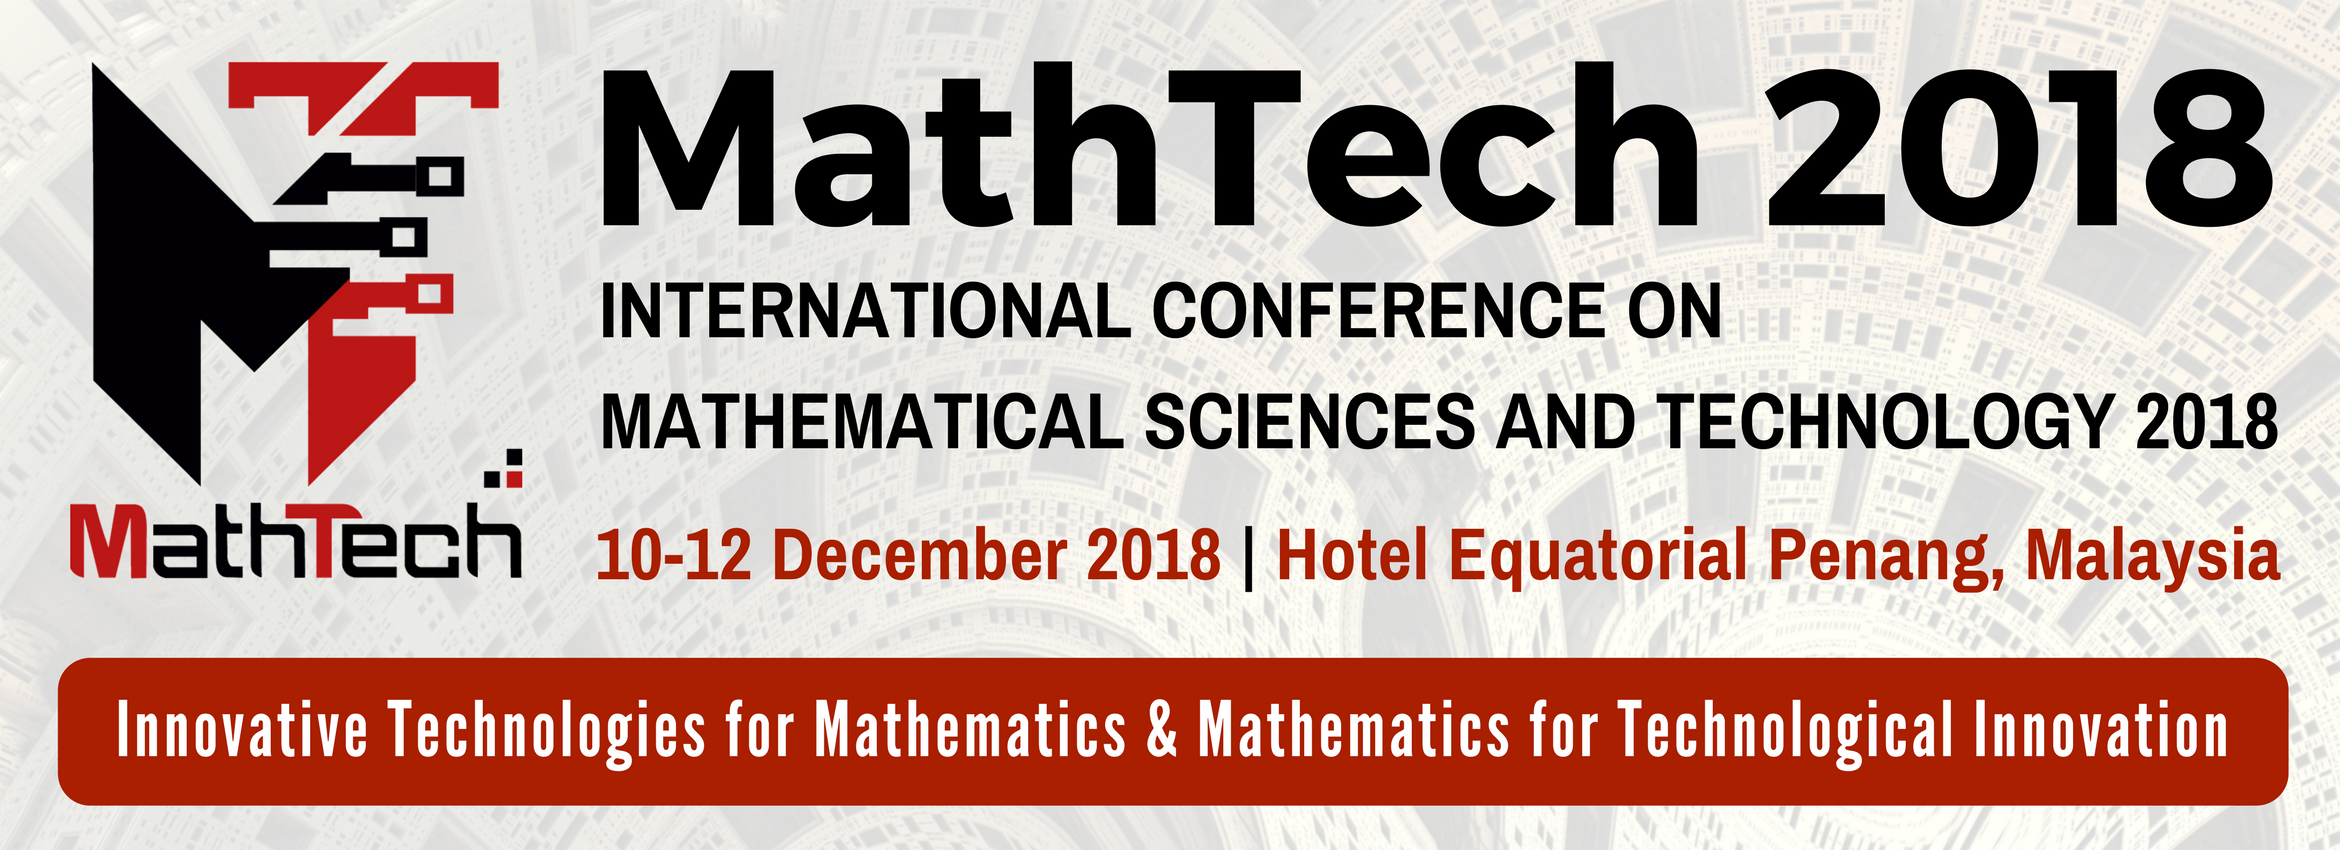 INTERNATIONAL CONFERENCE ON MATHEMATICAL SCIENCES AND TECHNOLOGY 2018